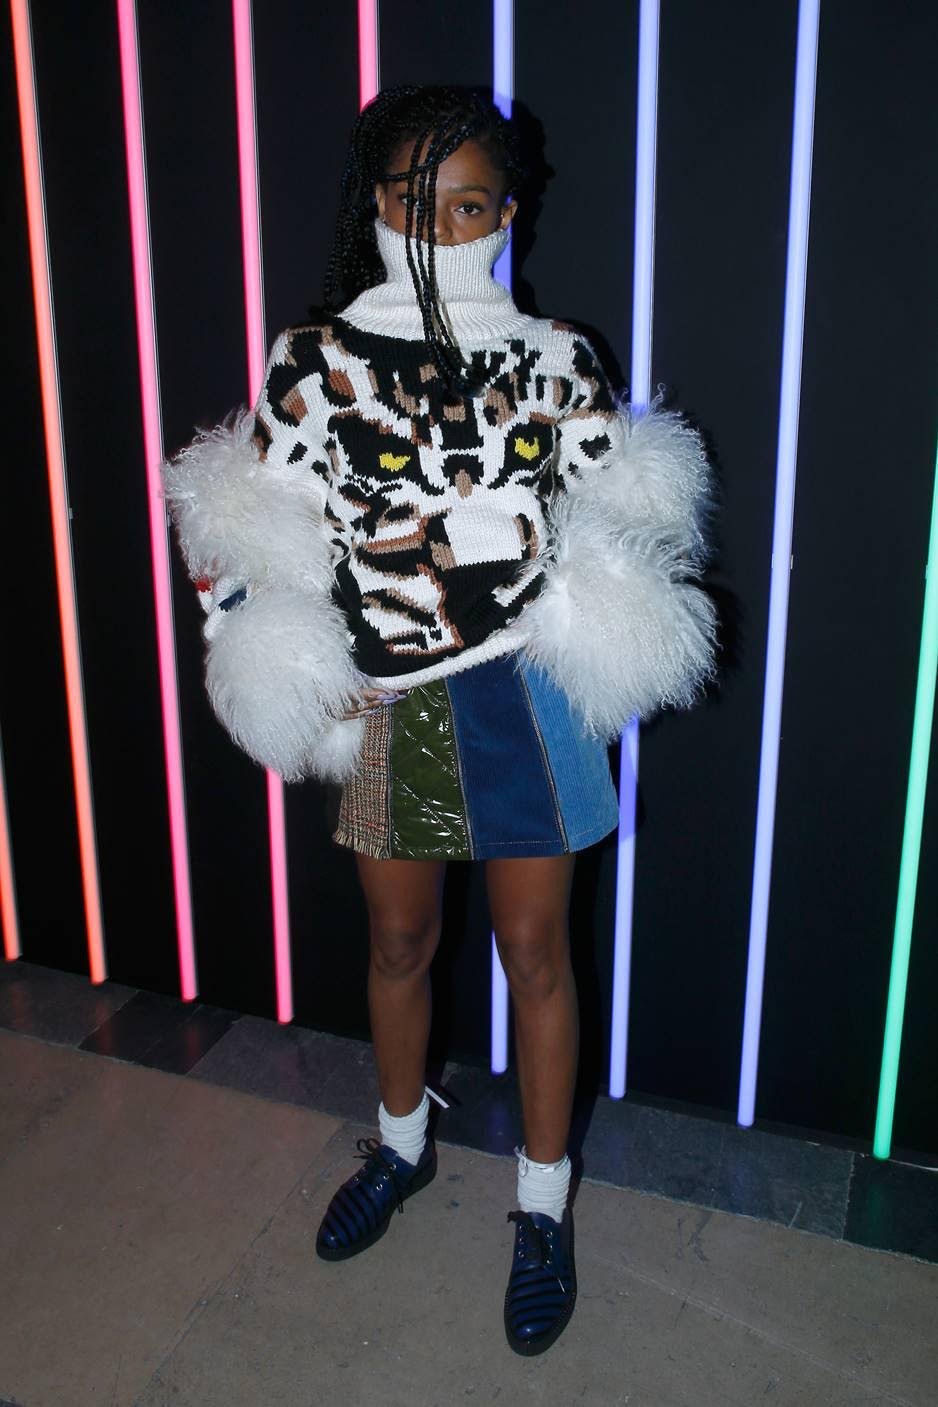 selah-marley-in-sonia-rykiel-sonia-rykiel-fall-winter-2018